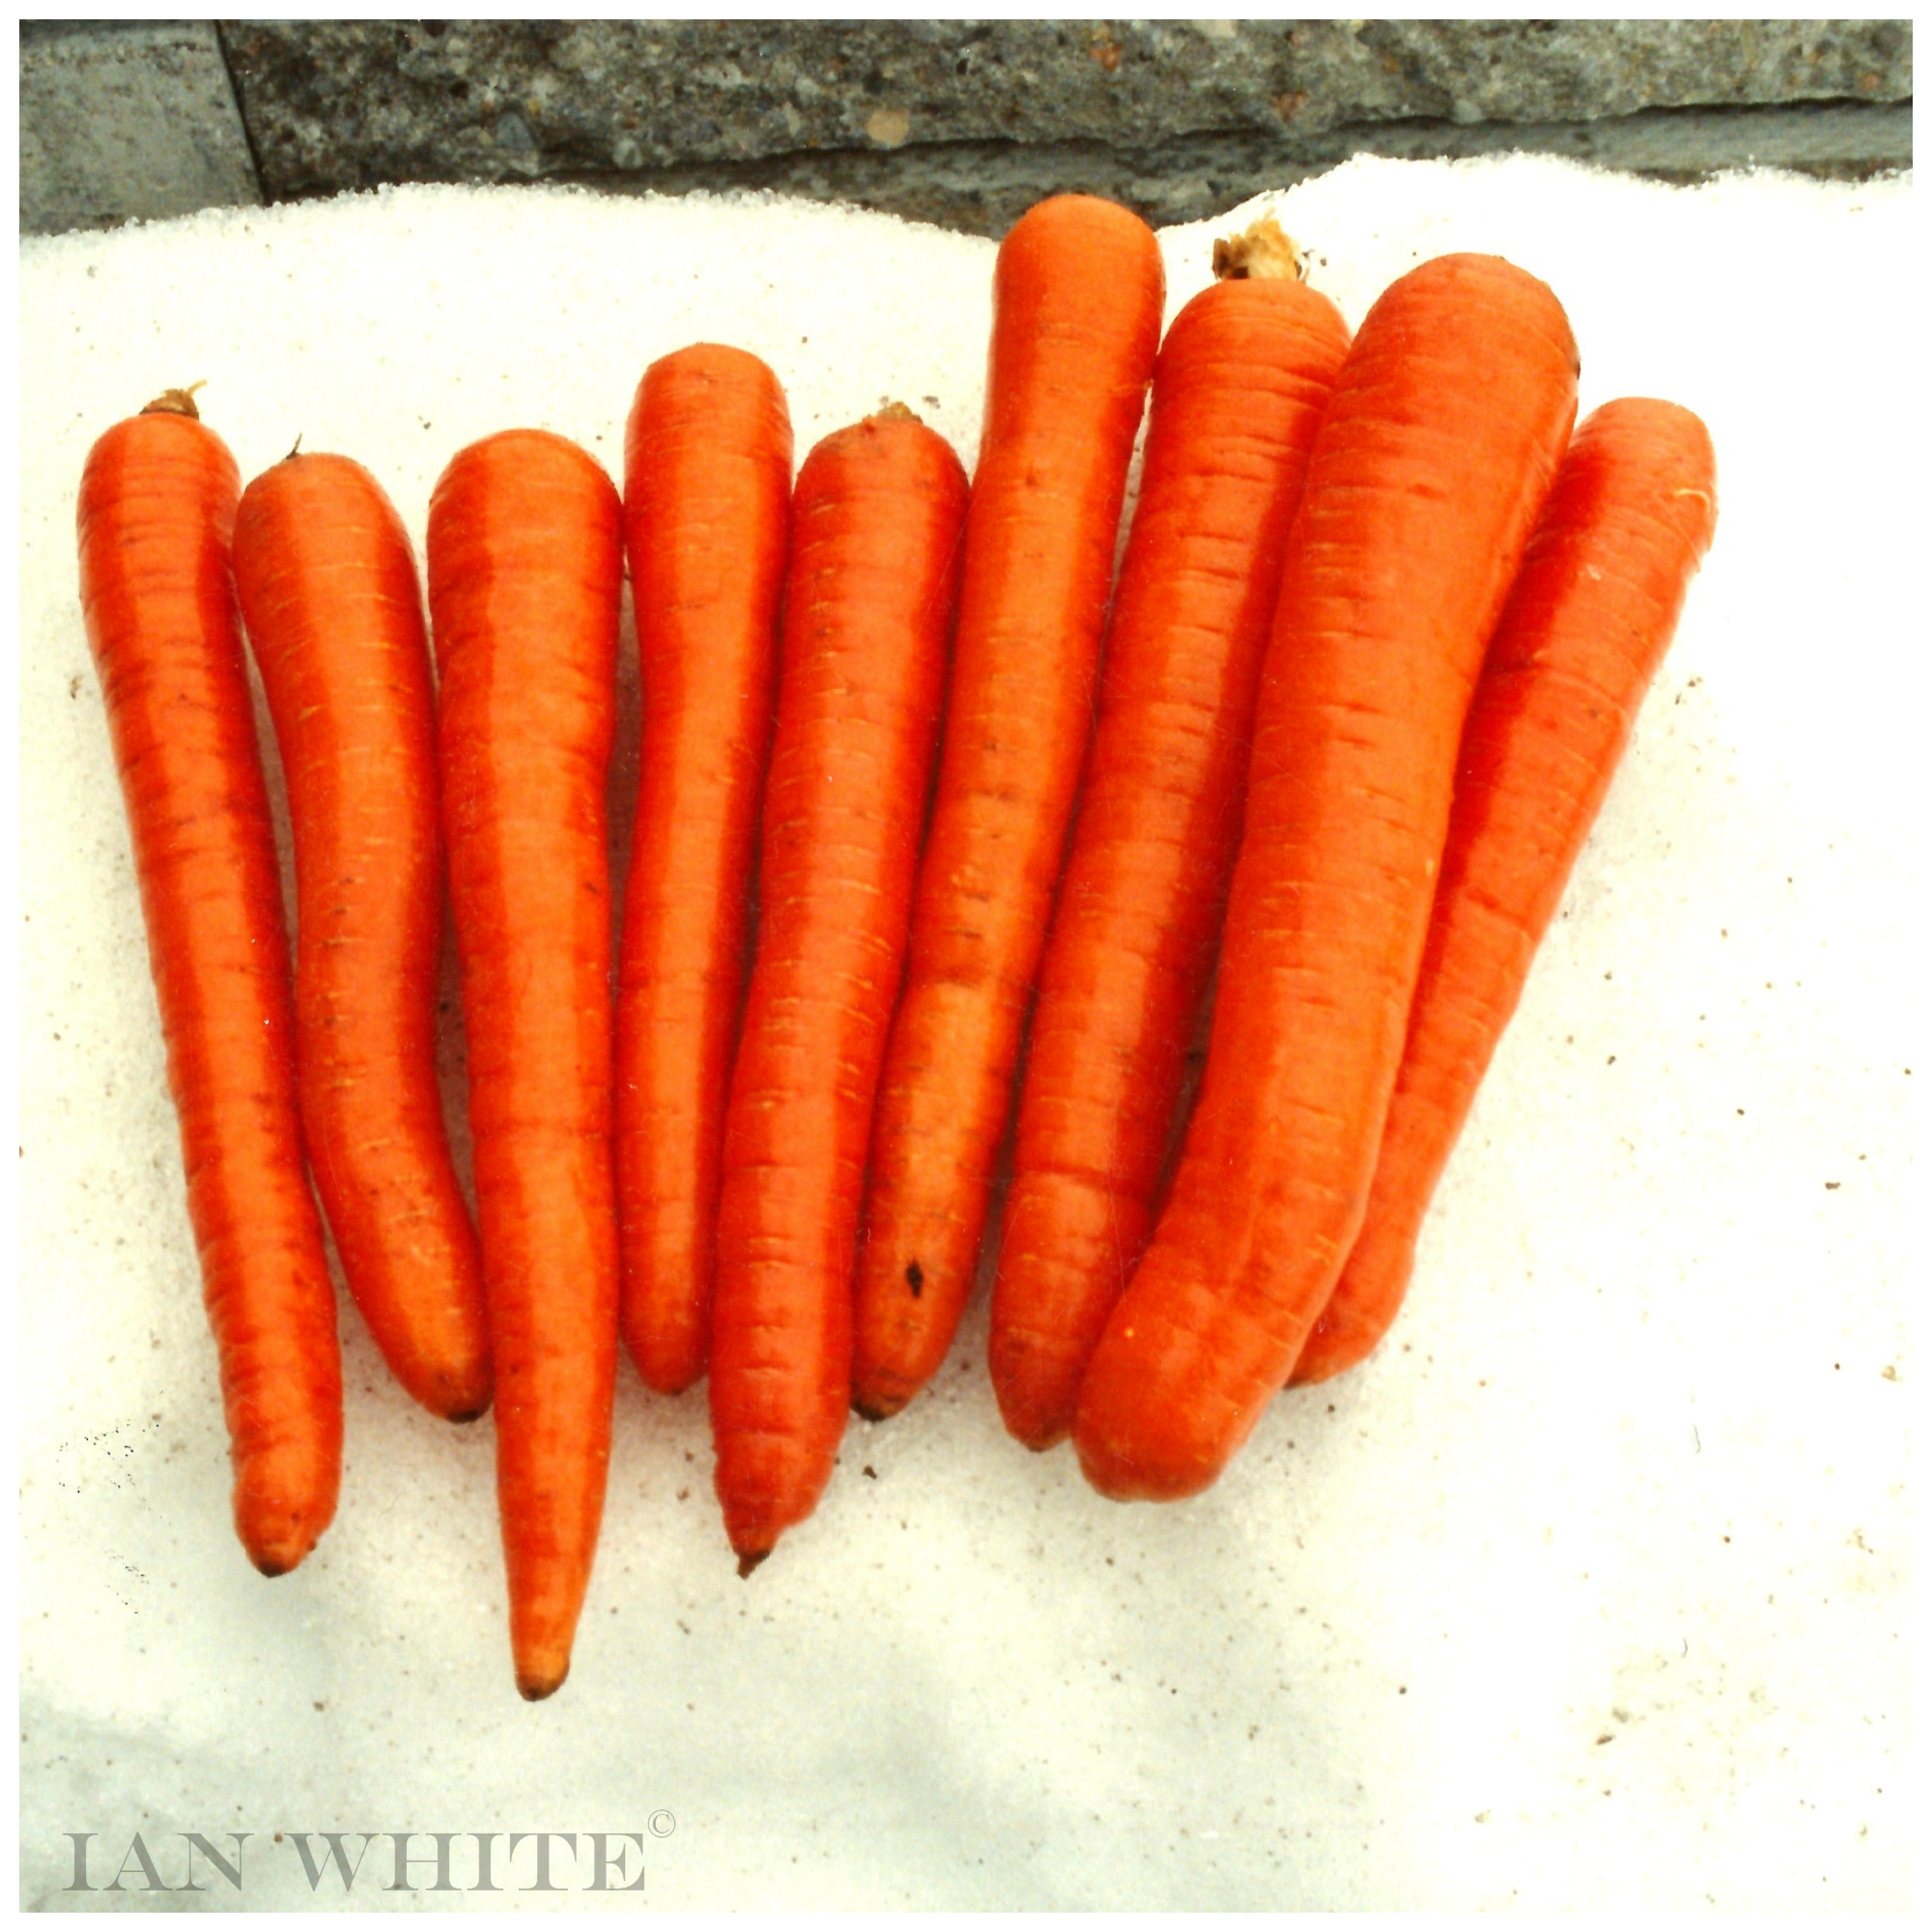 CARROTS STORED FOR FOUR MONTHS